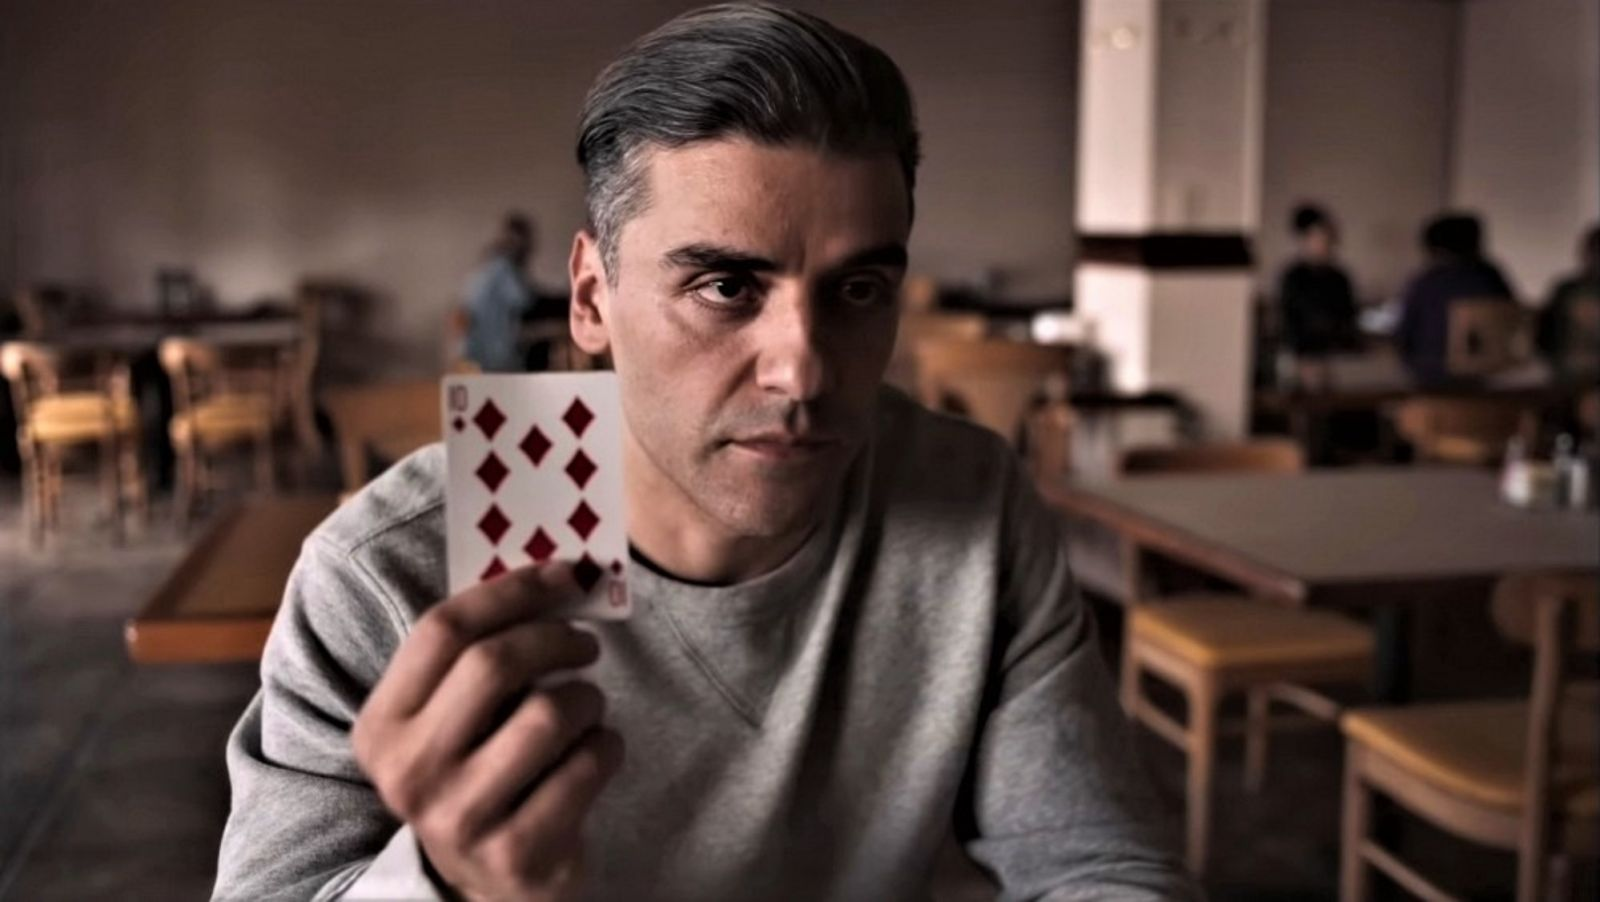 Watch The Card Counter (2021) Full Movies Full HD Free Online